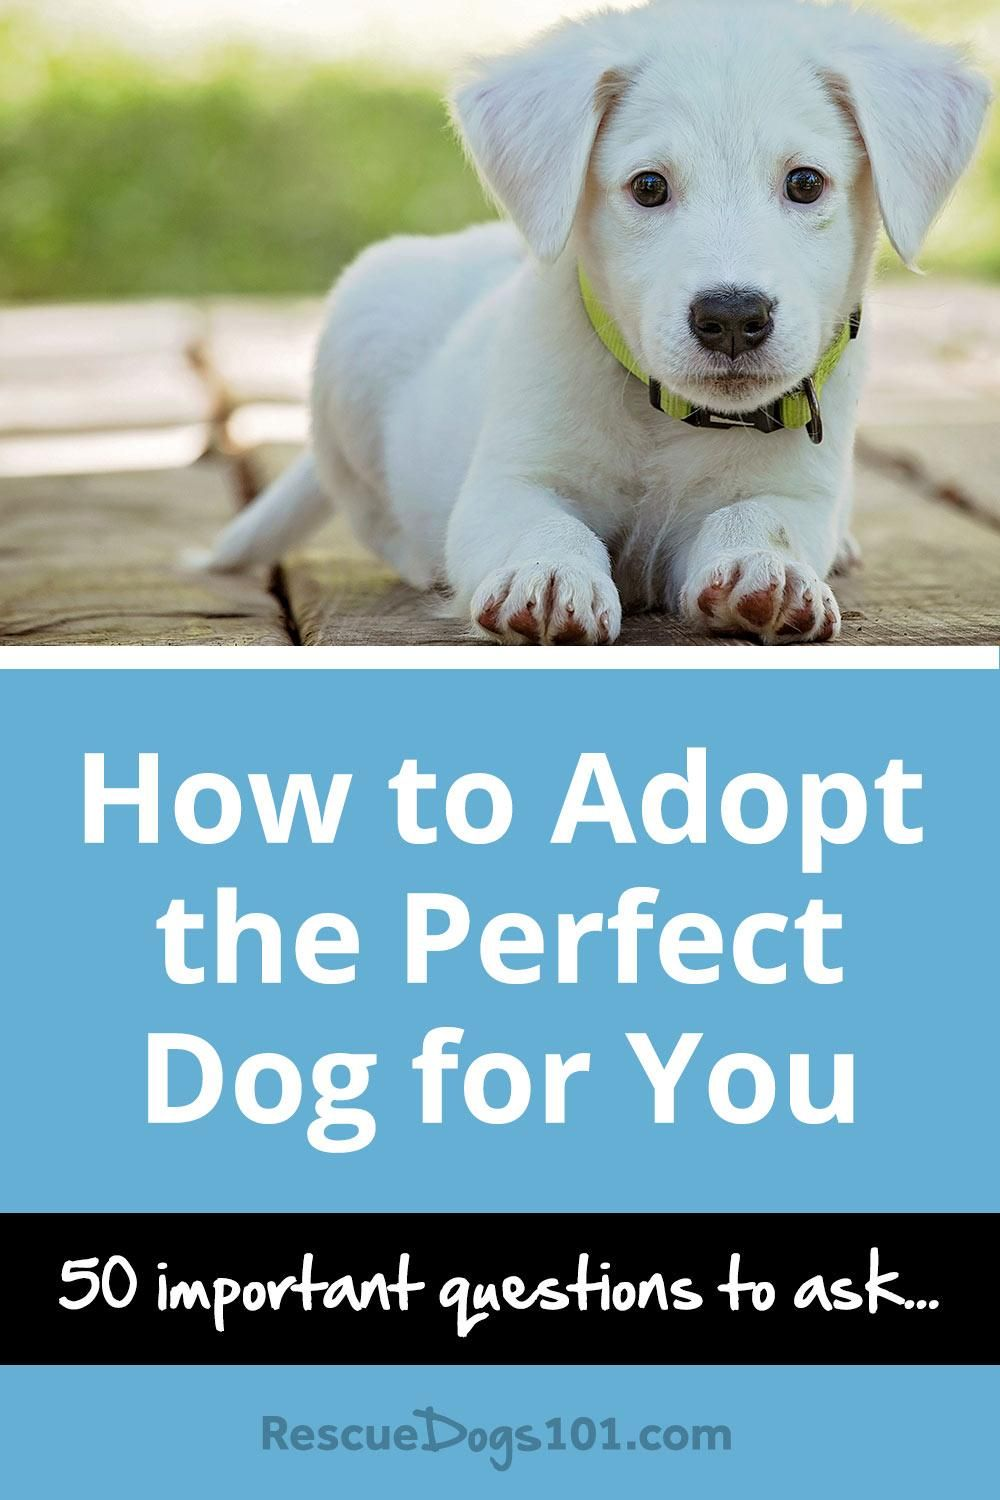 Adopting the Perfect Pet advise